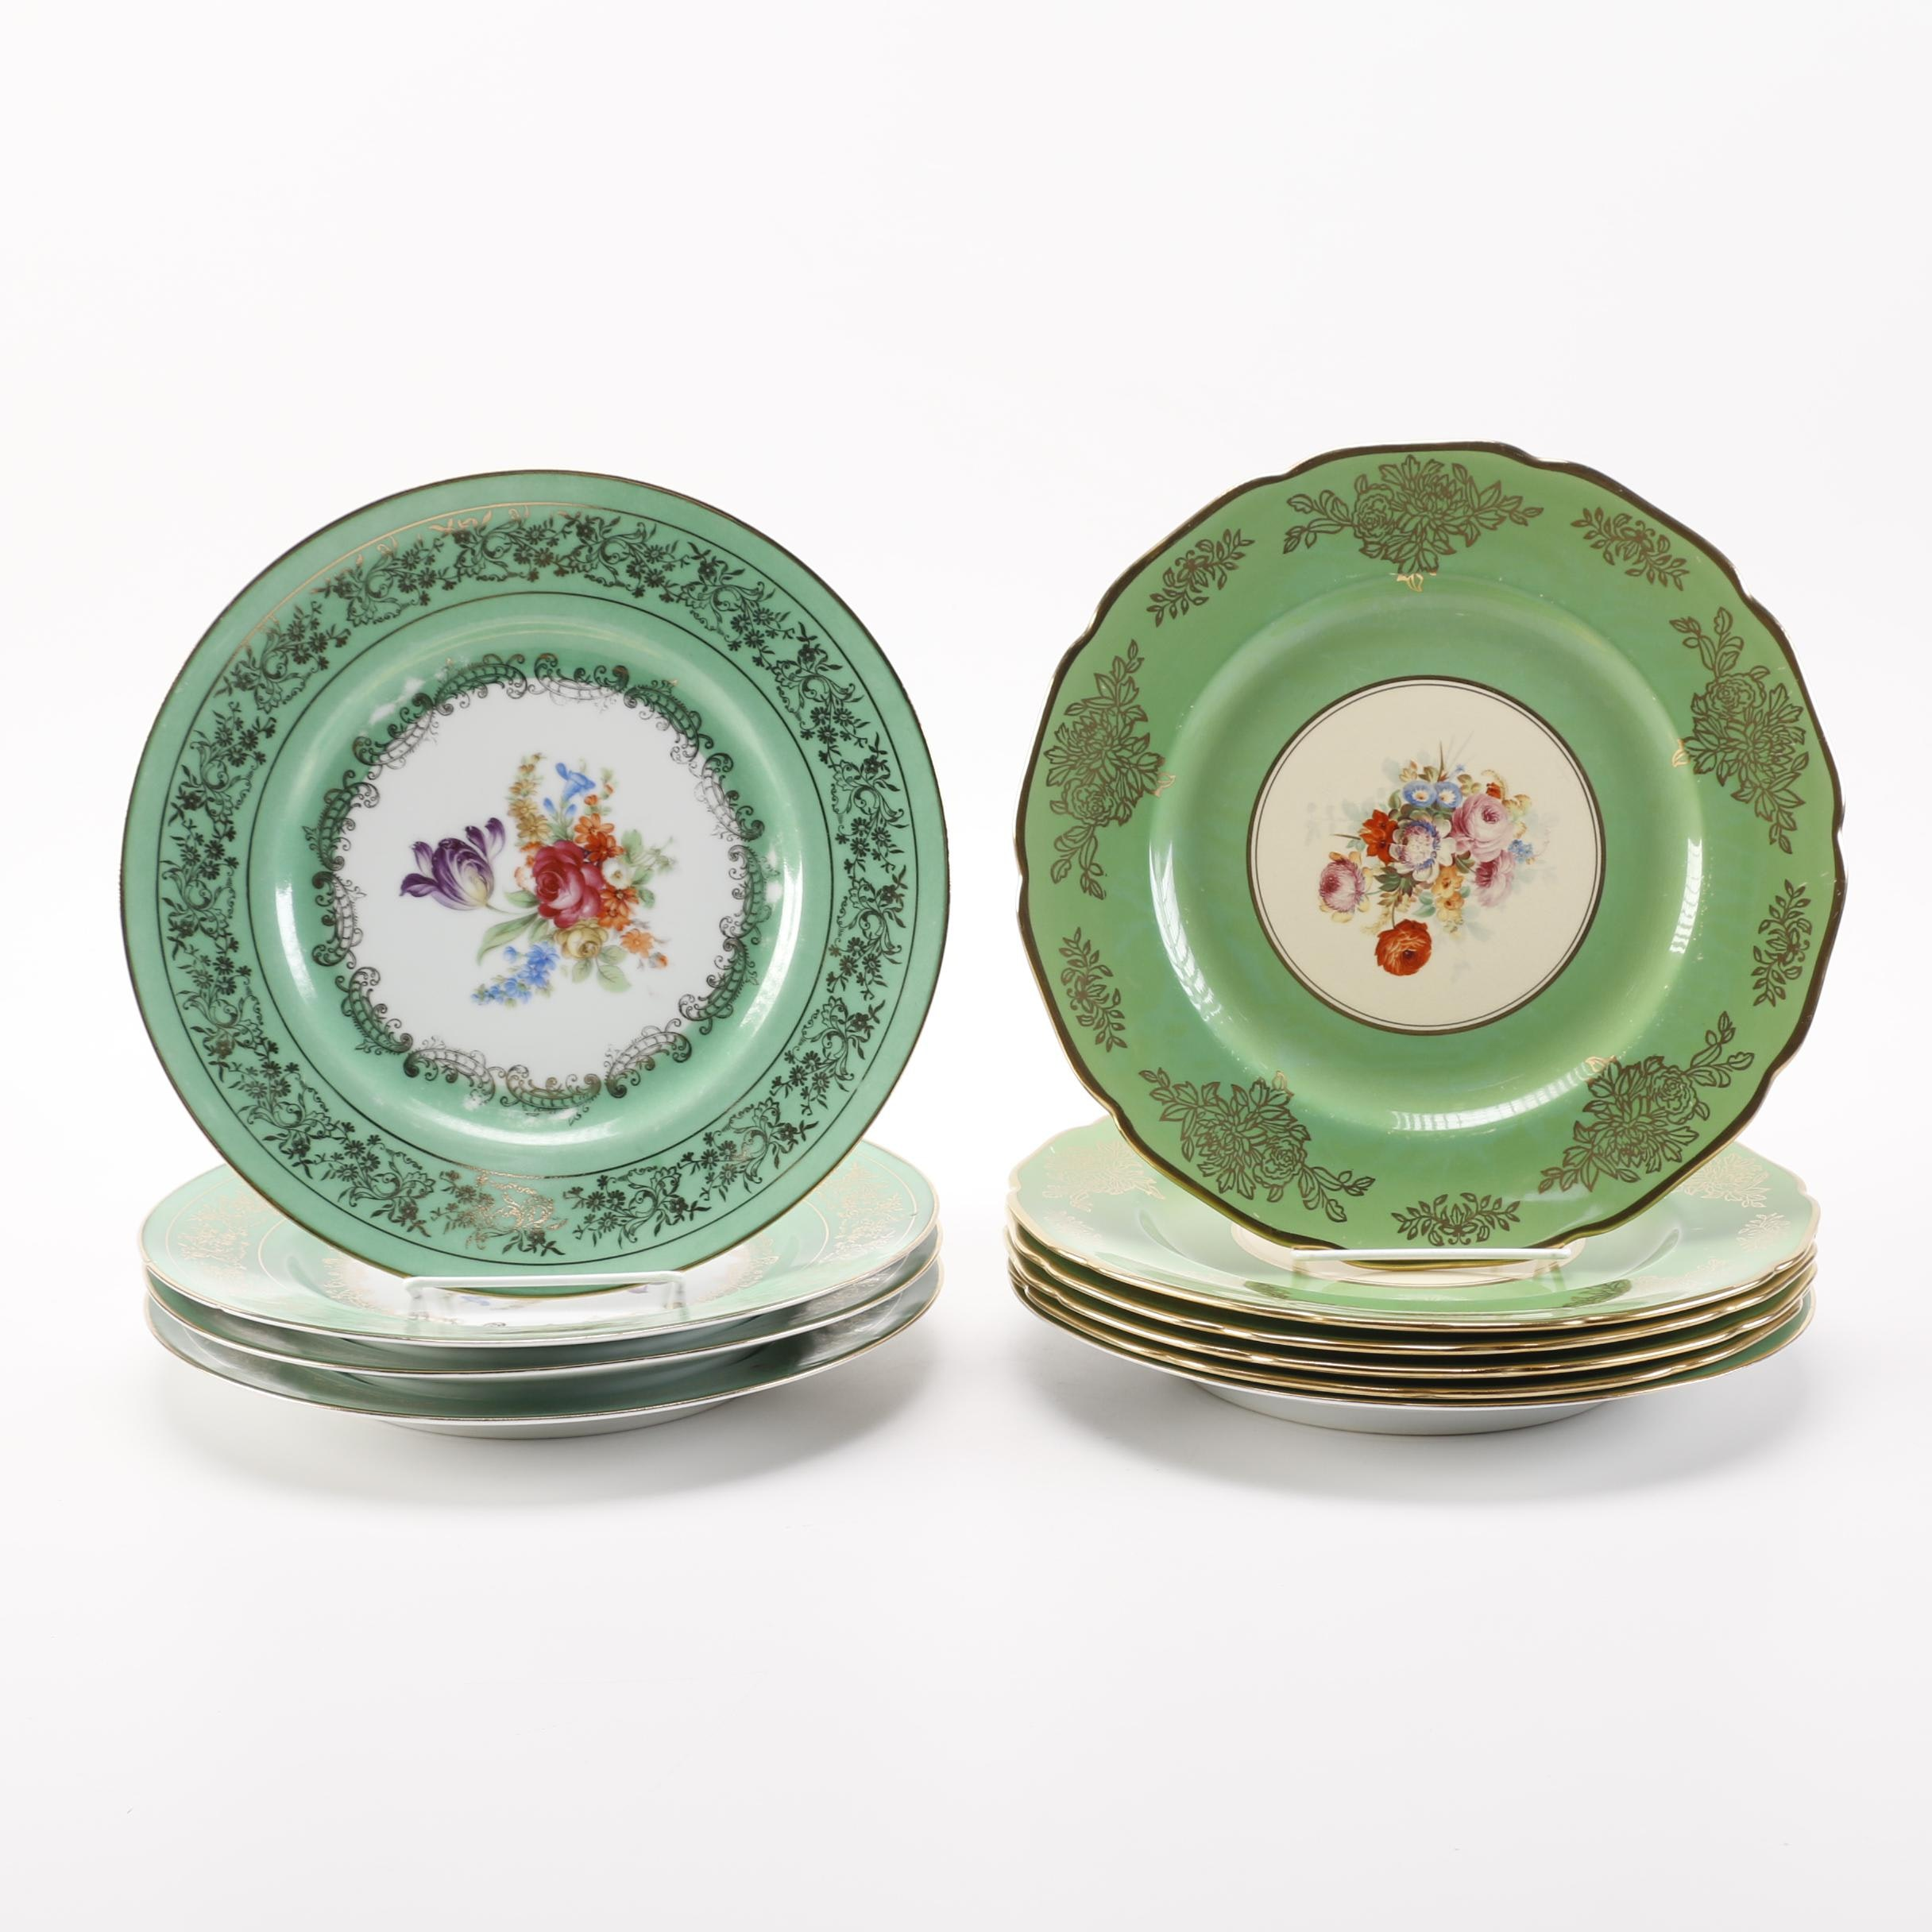 Vintage Porcelain and Ceramic Floral Plates